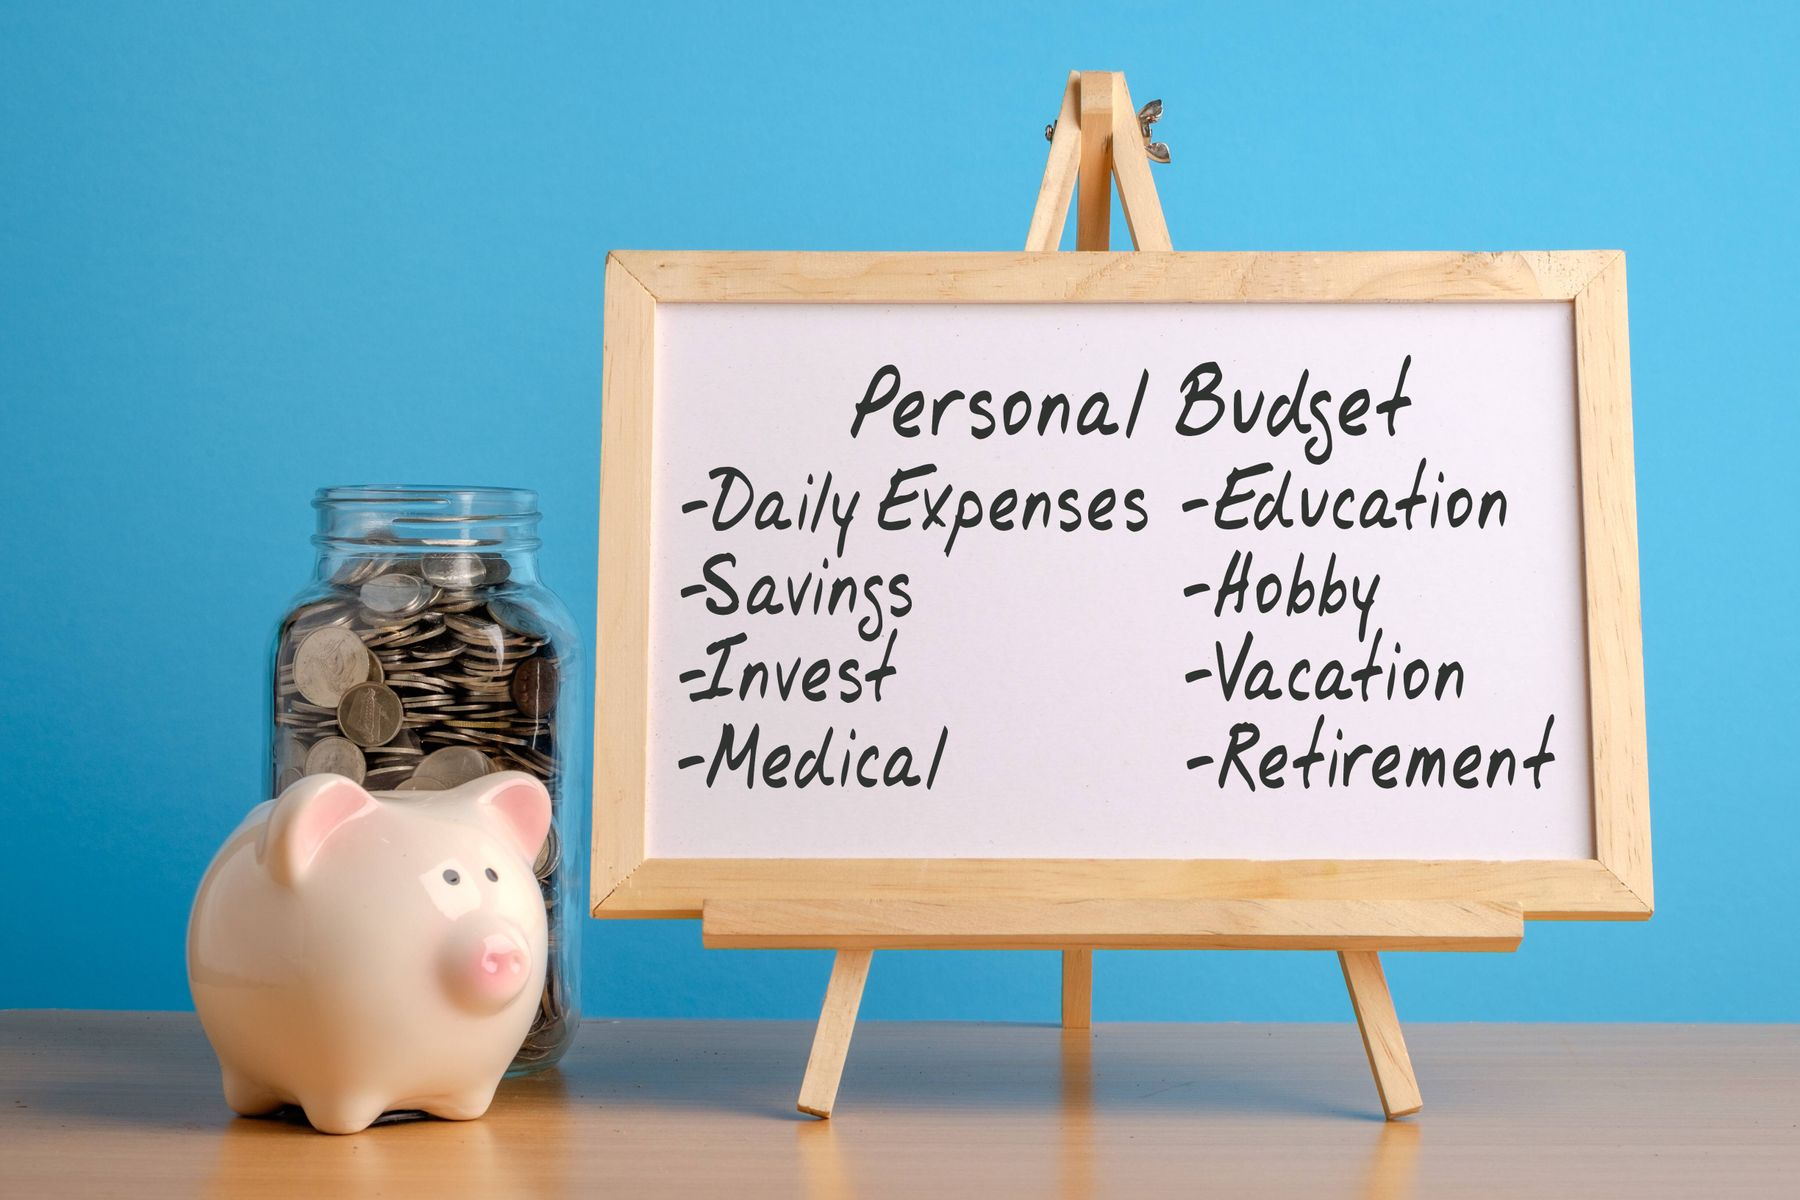 a whiteboard with the personal budget next to a piggy bank and coins